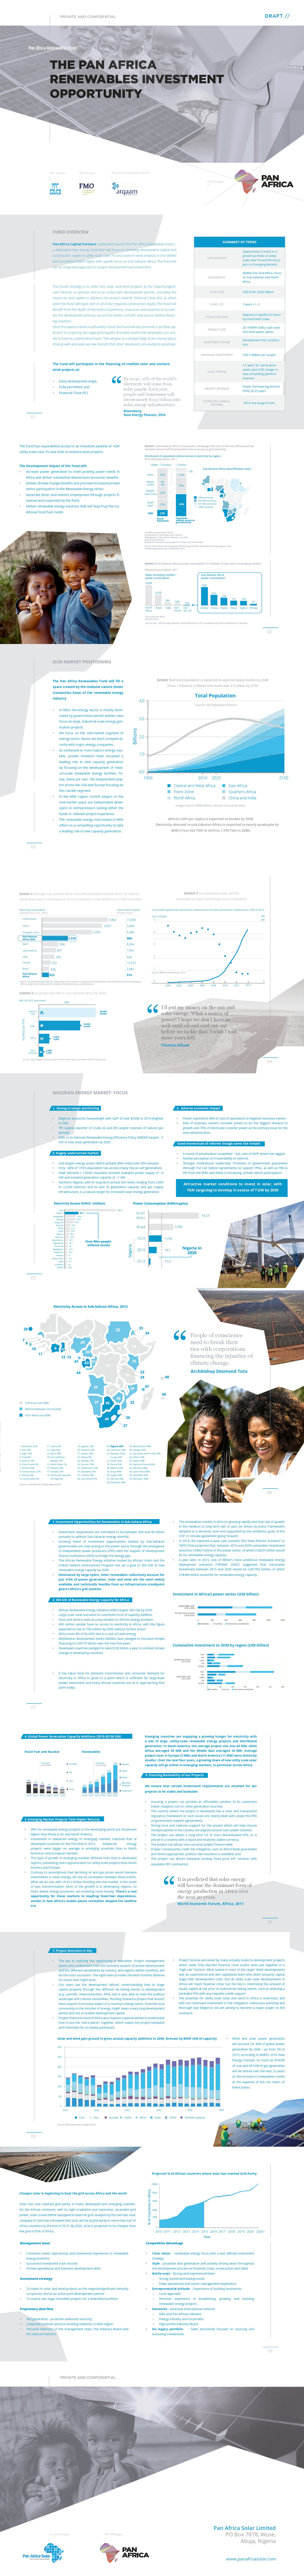 Create a world class Renewable Energy 'Teaser' to attract $150m of investment for Africans